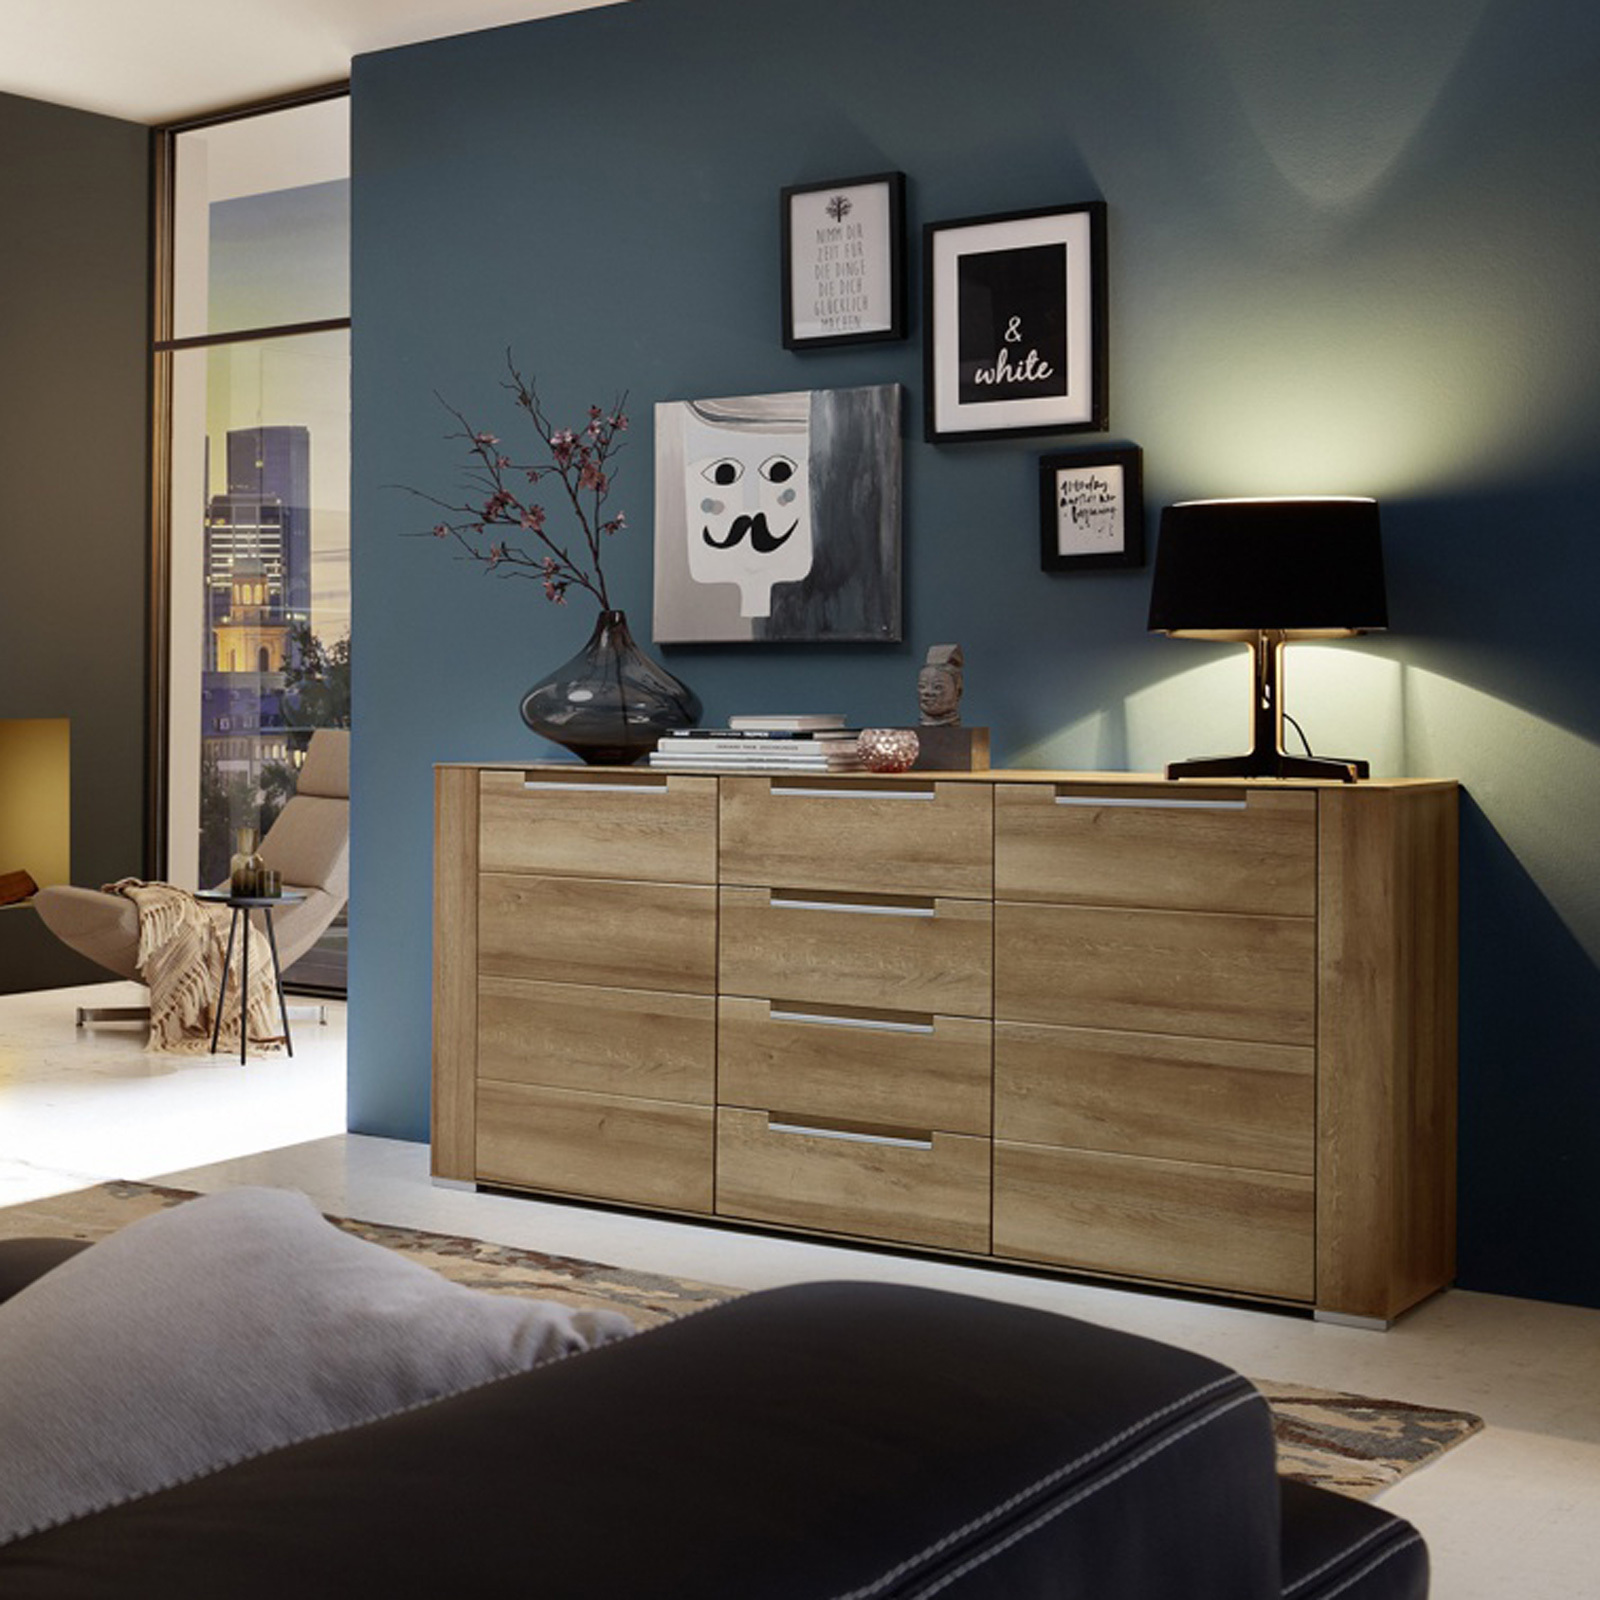 sideboard dinaro kommode anrichte wohnzimmer schrank in eiche hell 170 cm breit ebay. Black Bedroom Furniture Sets. Home Design Ideas